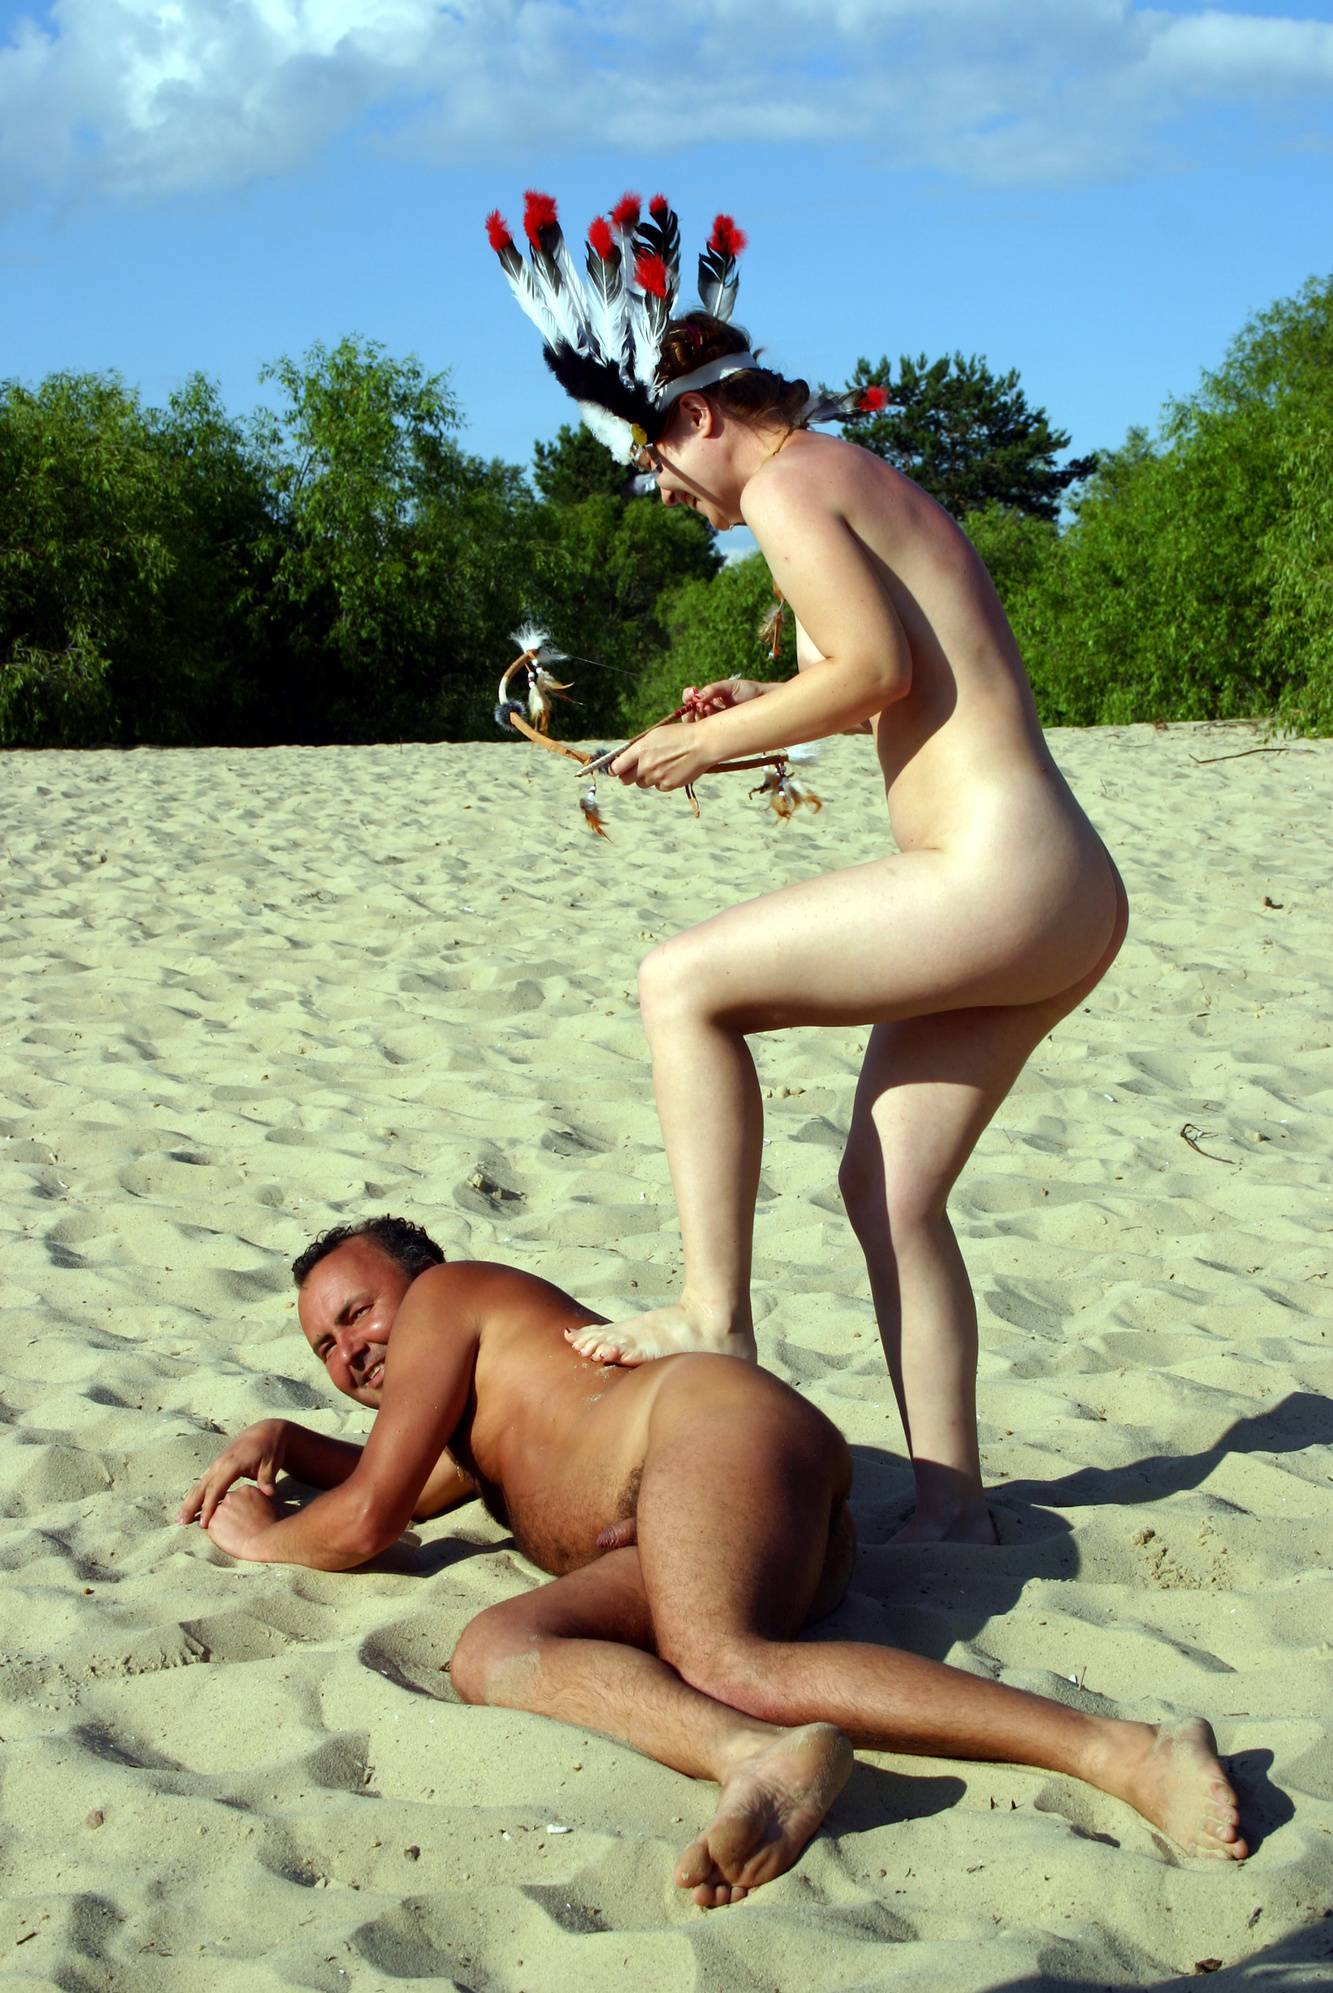 Nudist Pics Nude Dress Battles Begin - 2